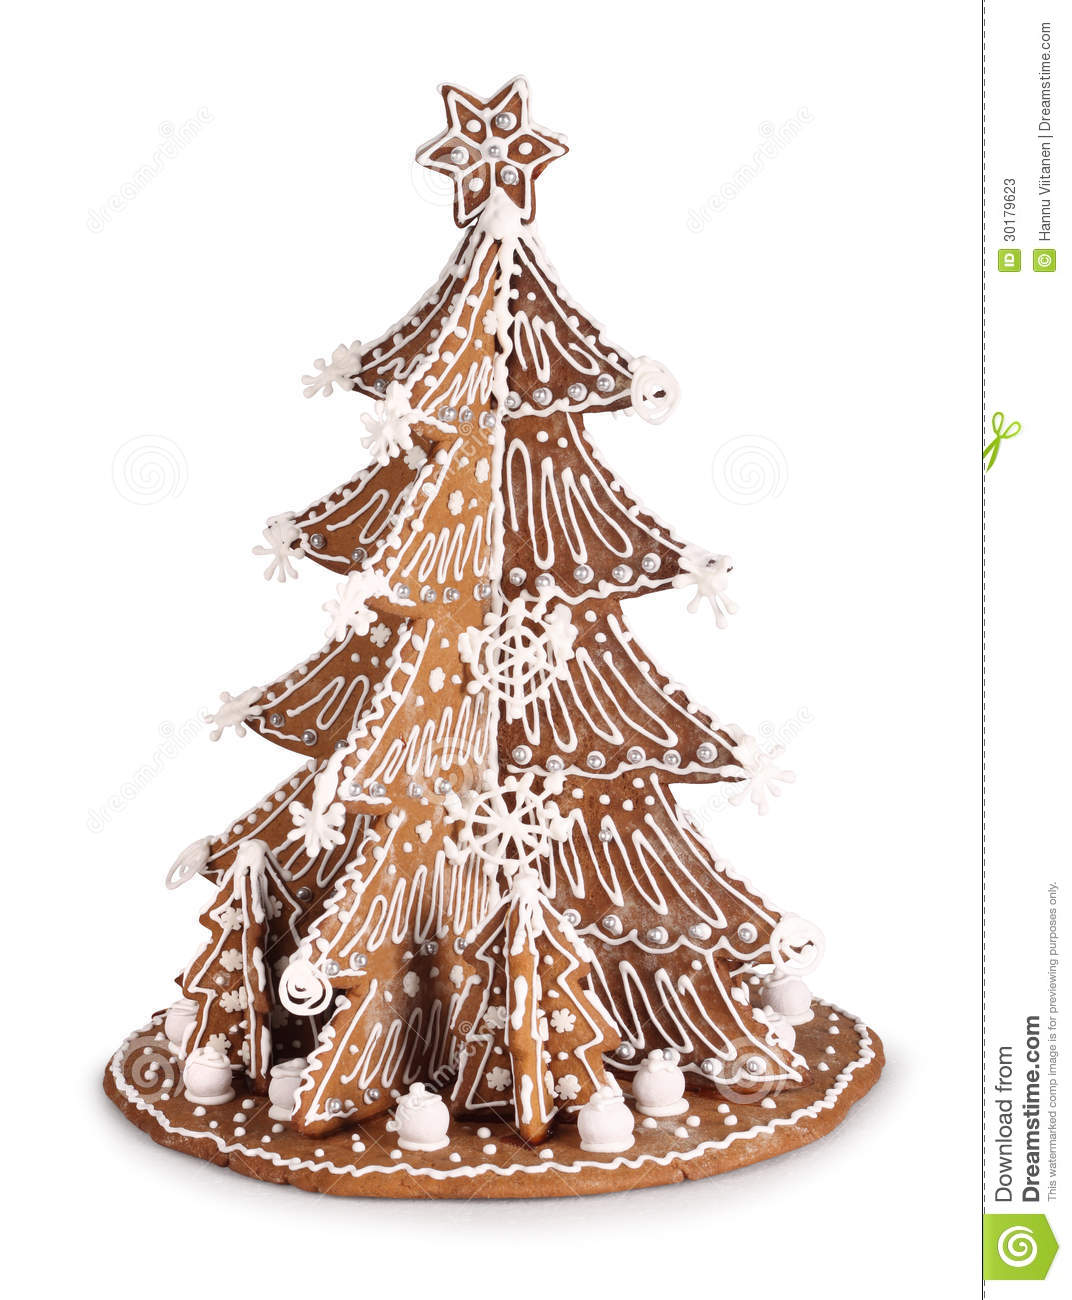 Gingerbread Christmas Tree Stock Image Image Of Isolated 30179623